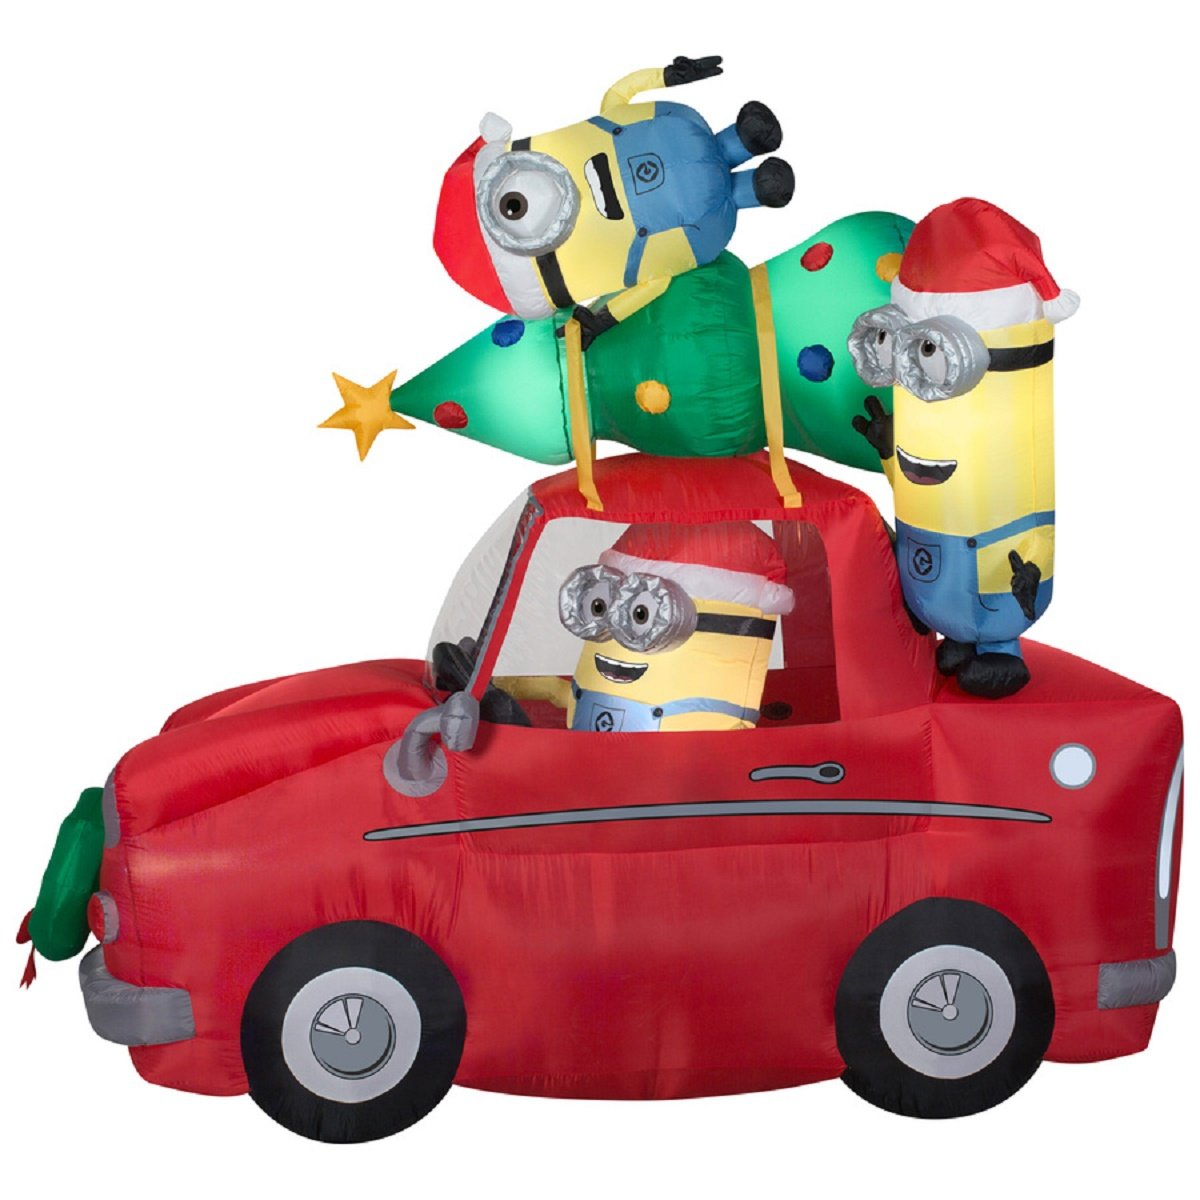 Christmas Inflatable Minions in Car with Christmas Tree 7-ft x 4-ft Lighted Indoor/Outdoor Decoration by Gemmy